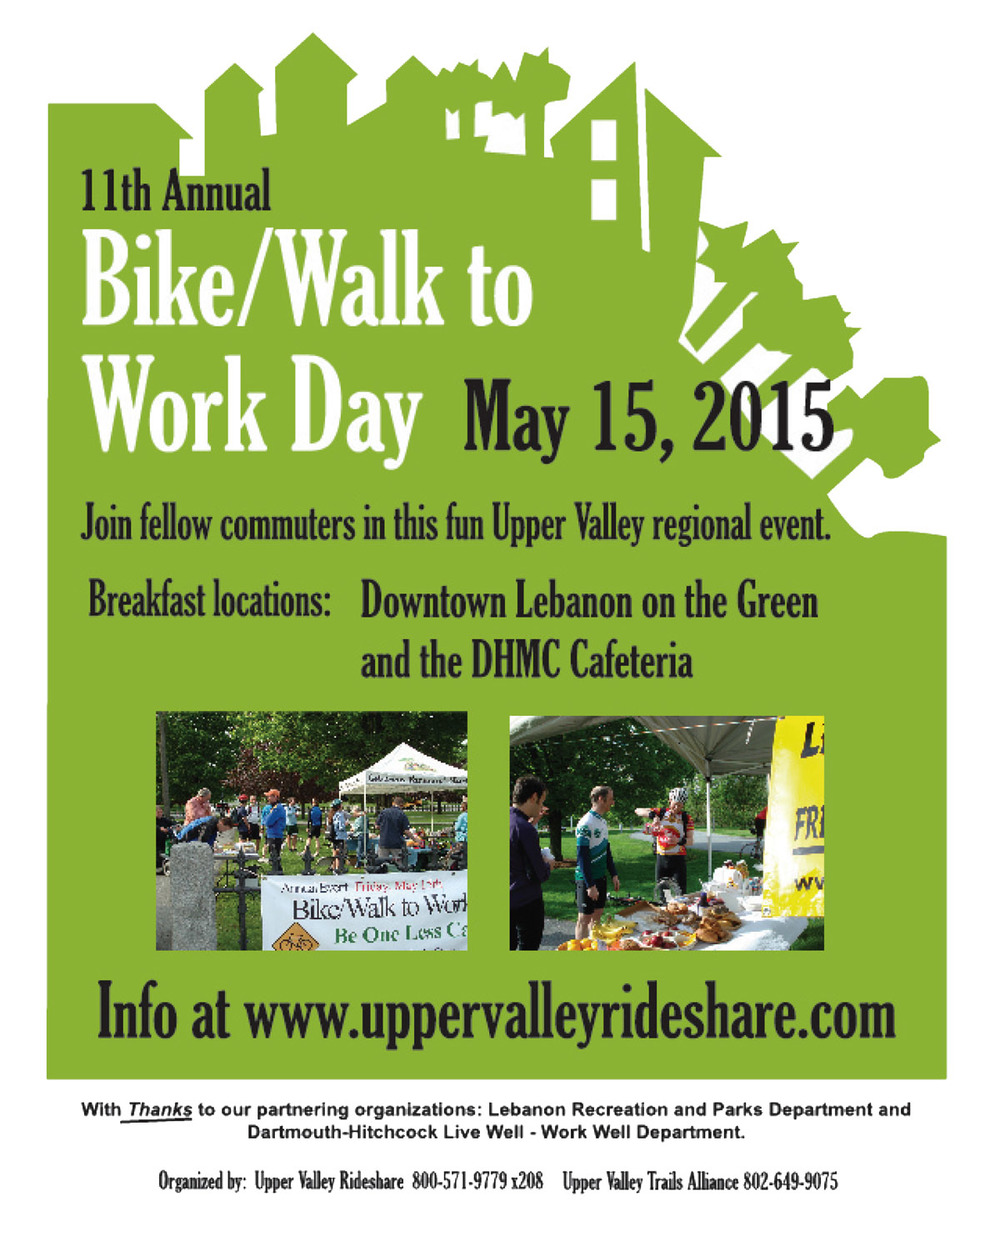 Over 90 people JOINEDthe 2015 Bike-Walk to Work Day event this year. Keep Biking all summer !!Click here for the eventinfo.